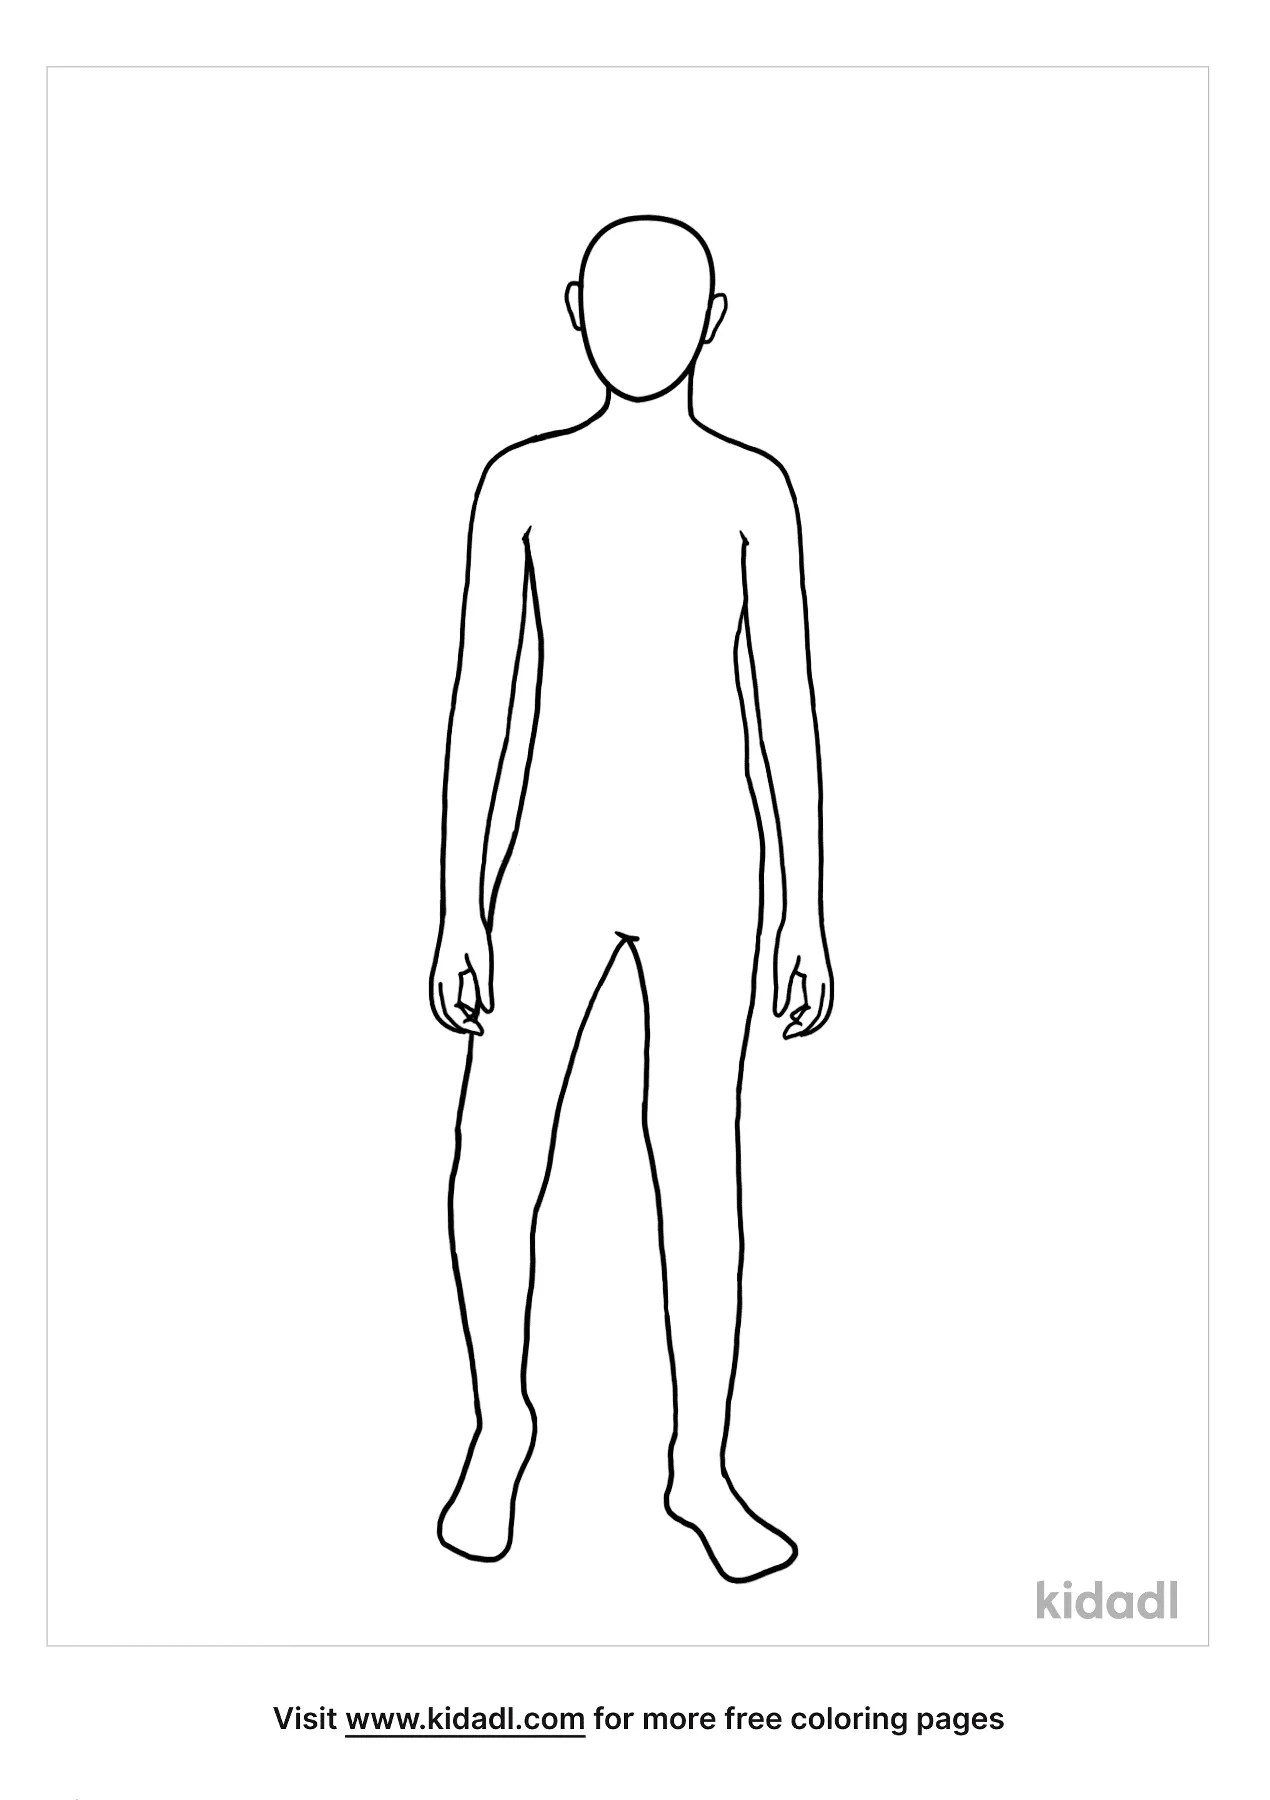 Person Coloring Page : person, coloring, Blank, Person, Coloring, Pages, People, Kidadl